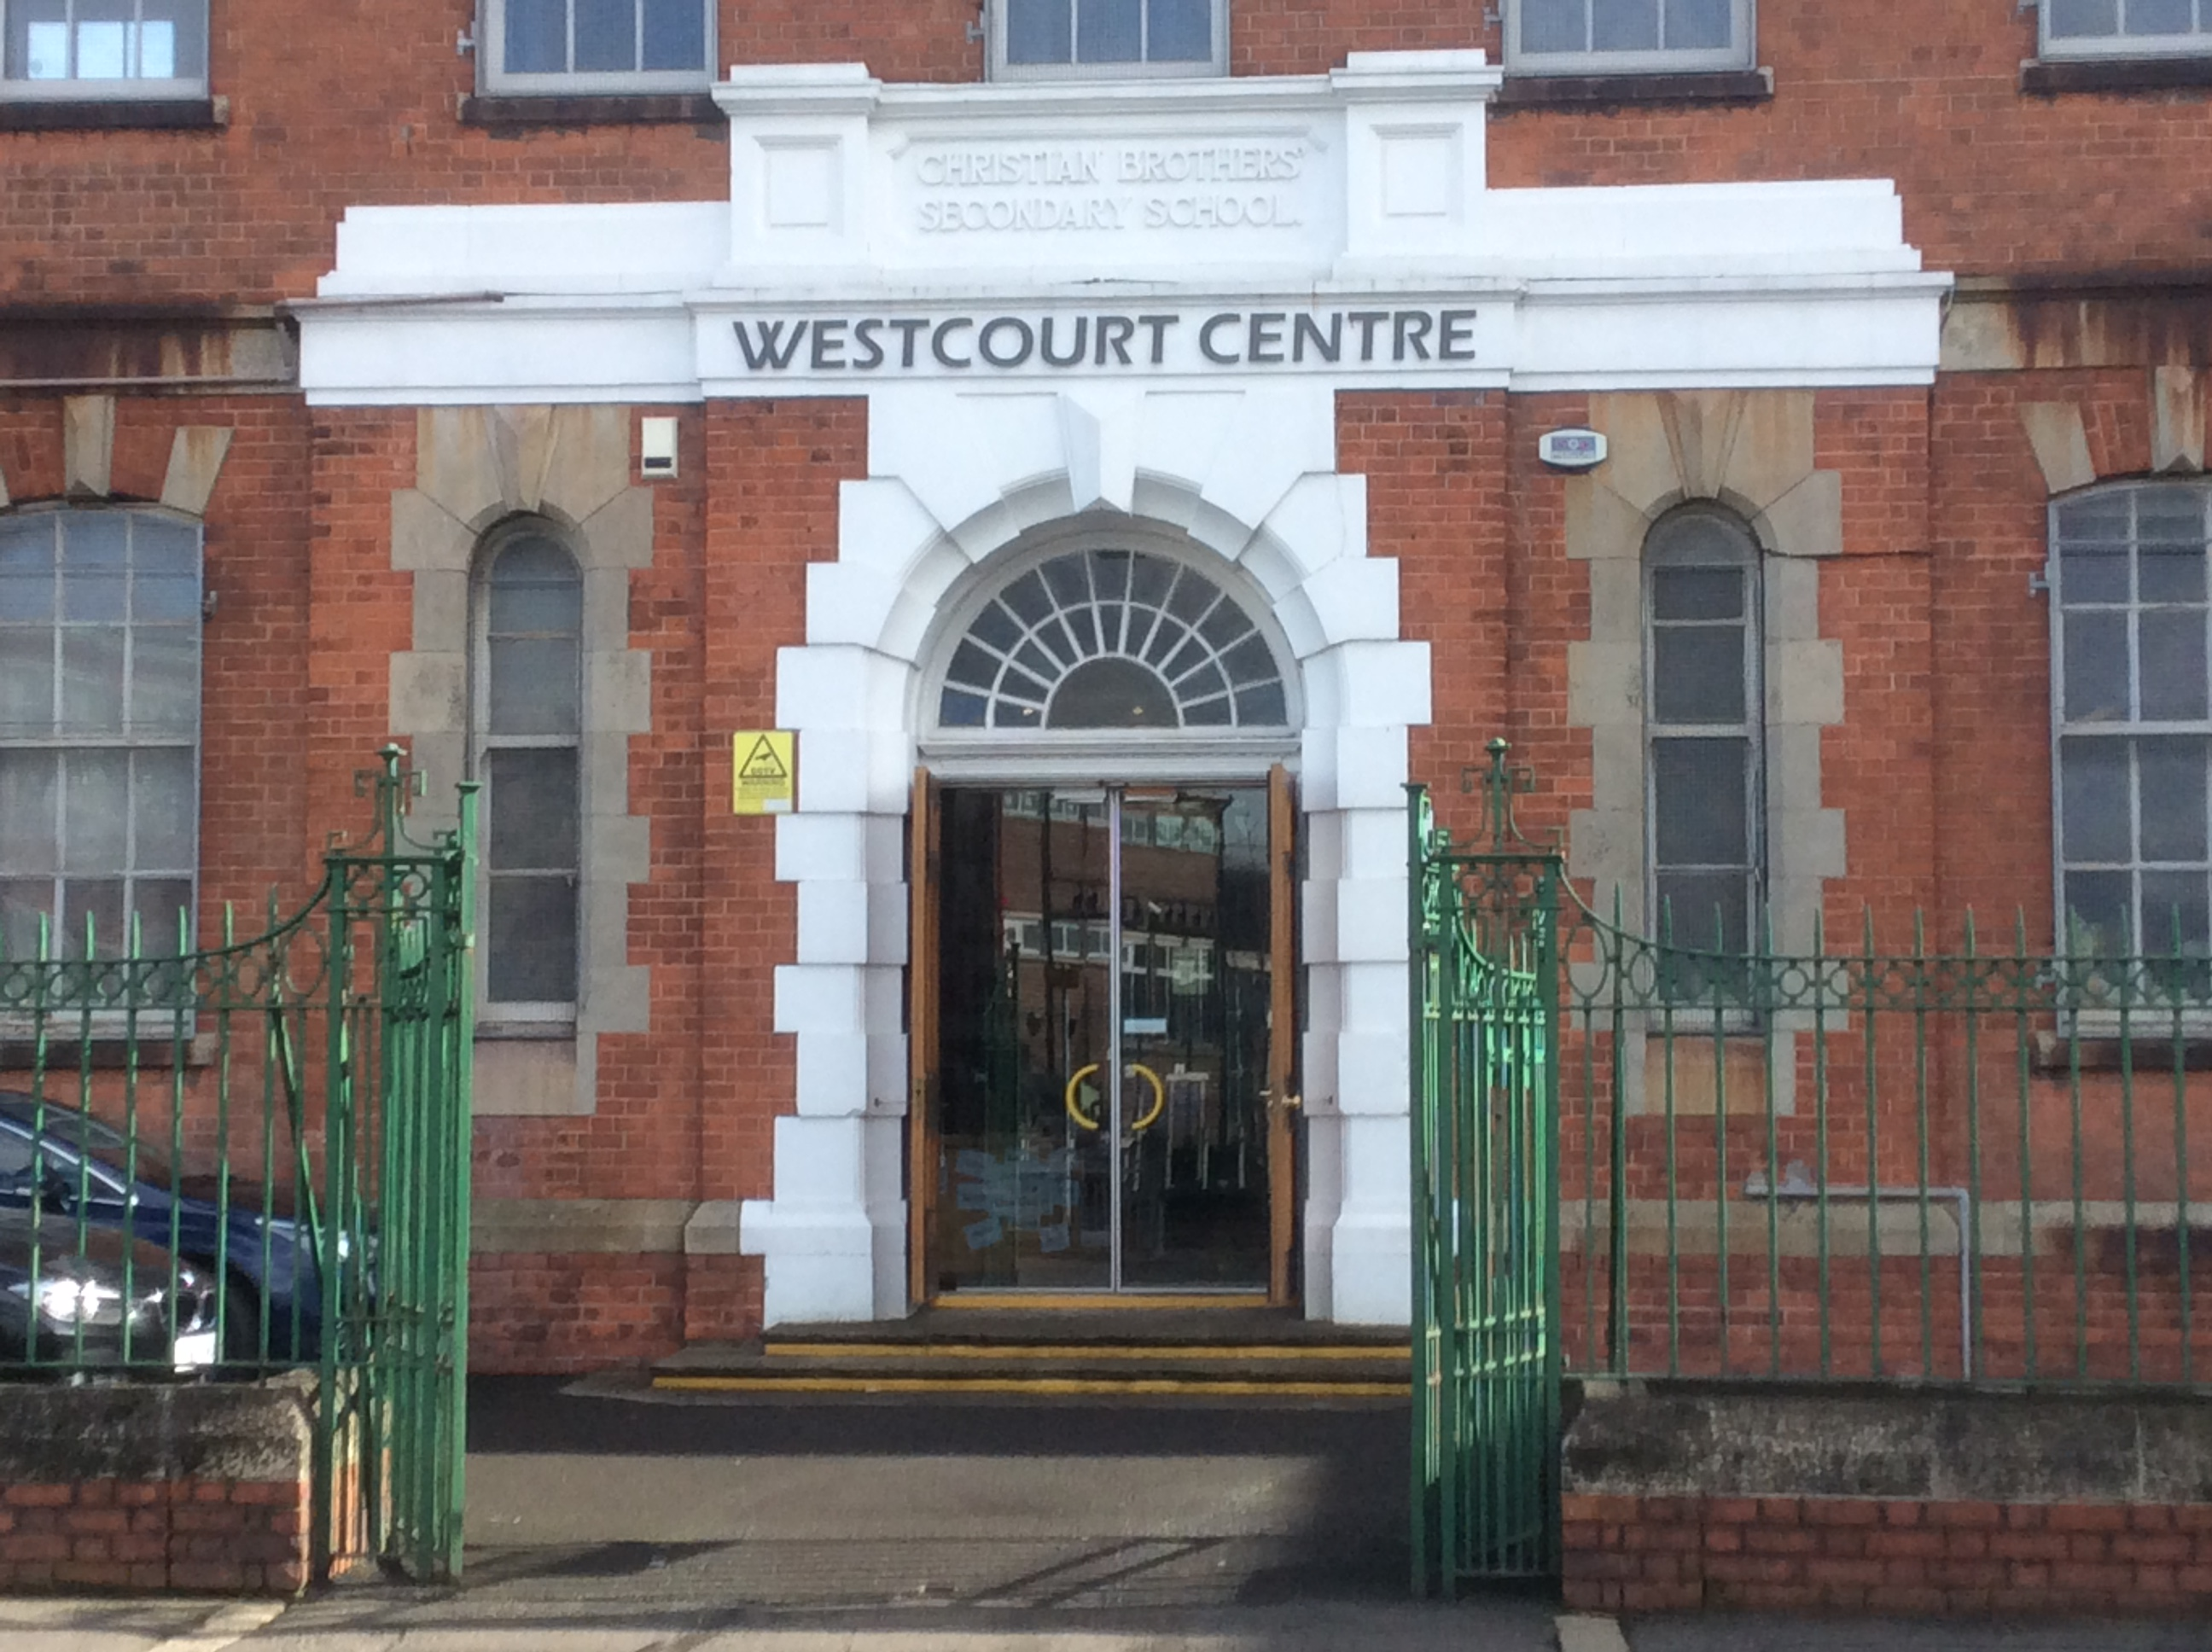 WestcourtCentre